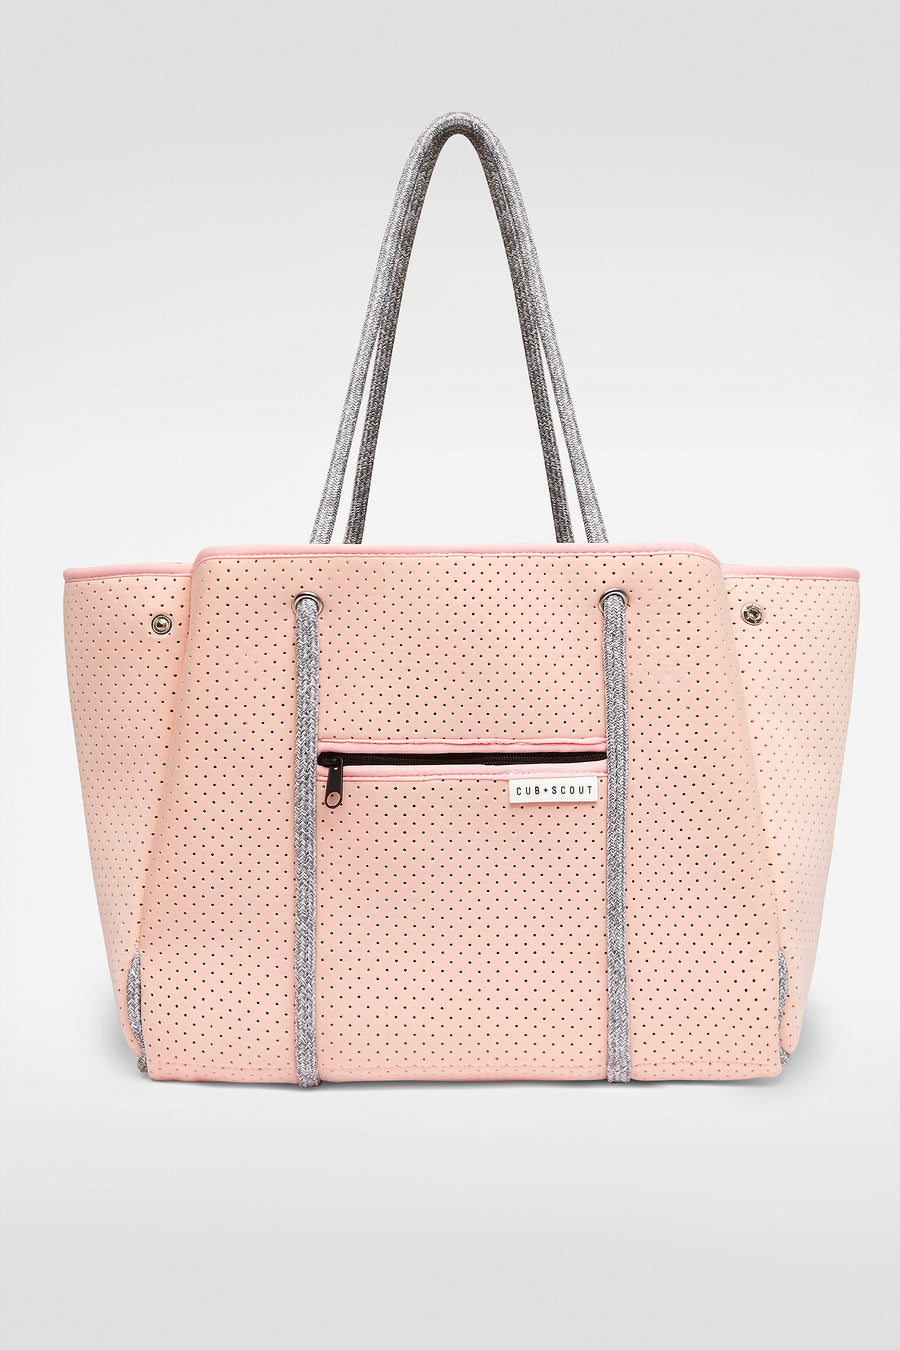 CS Carryall - Blush